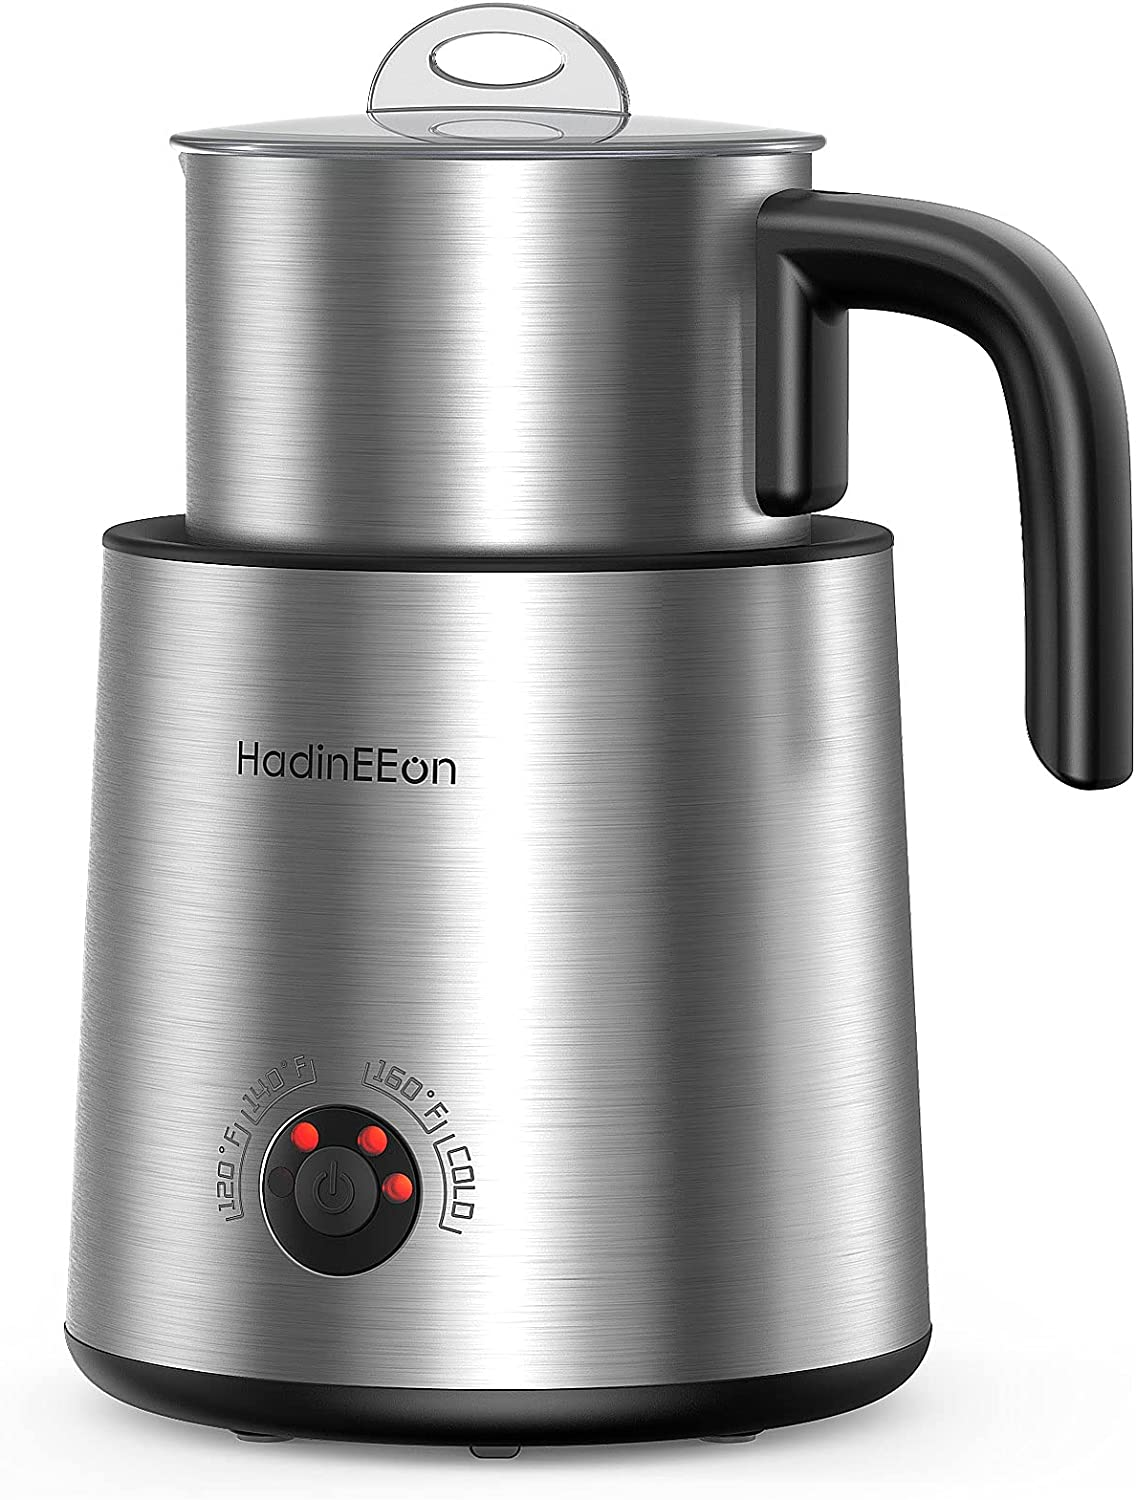 HadinEEon Detachable Milk Frother Variable Temperature, 13.5oz Automatic Electric Milk Frother, Dishwasher Safe Stainless Steel Hot/Cold Milk & Chocolate Steamer Detachable Milk Jug for Coffee, Latte